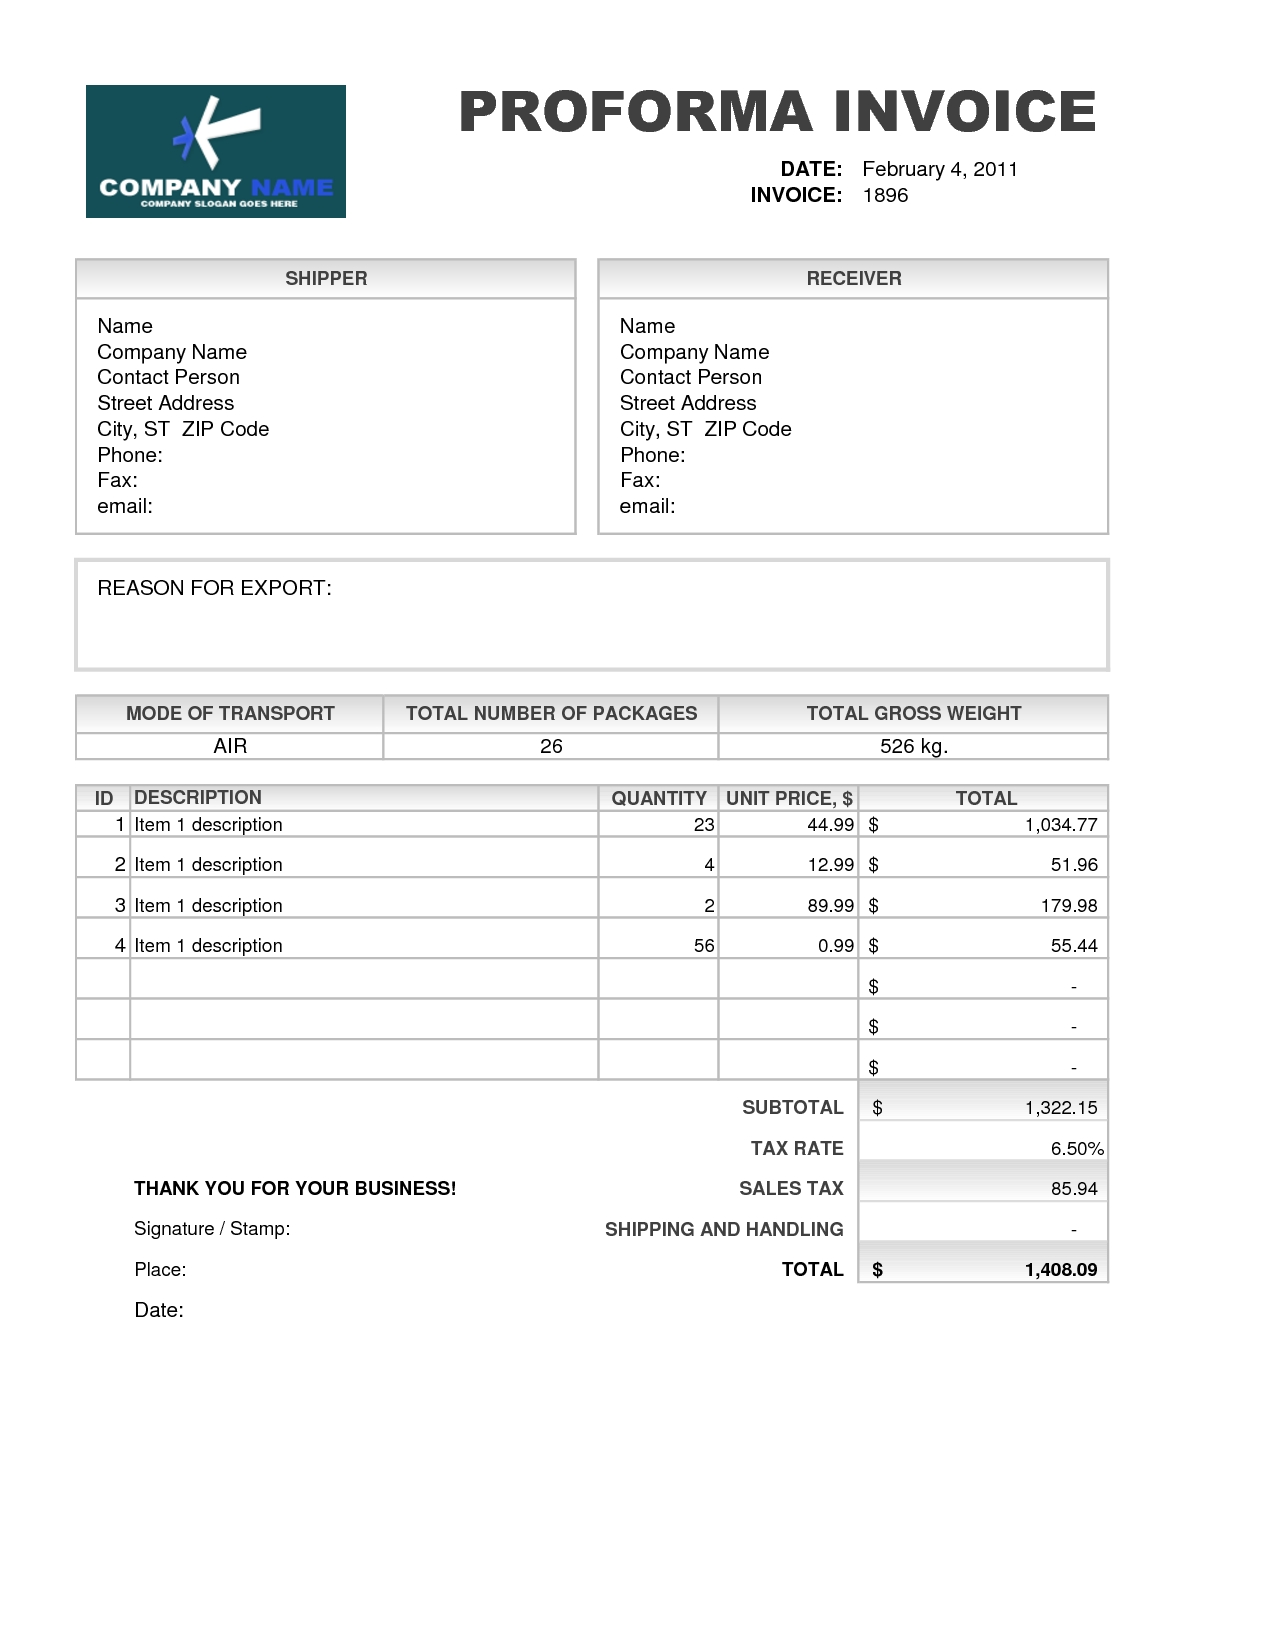 Sample Of Proforma Invoice For Export Invoice Template Ideas